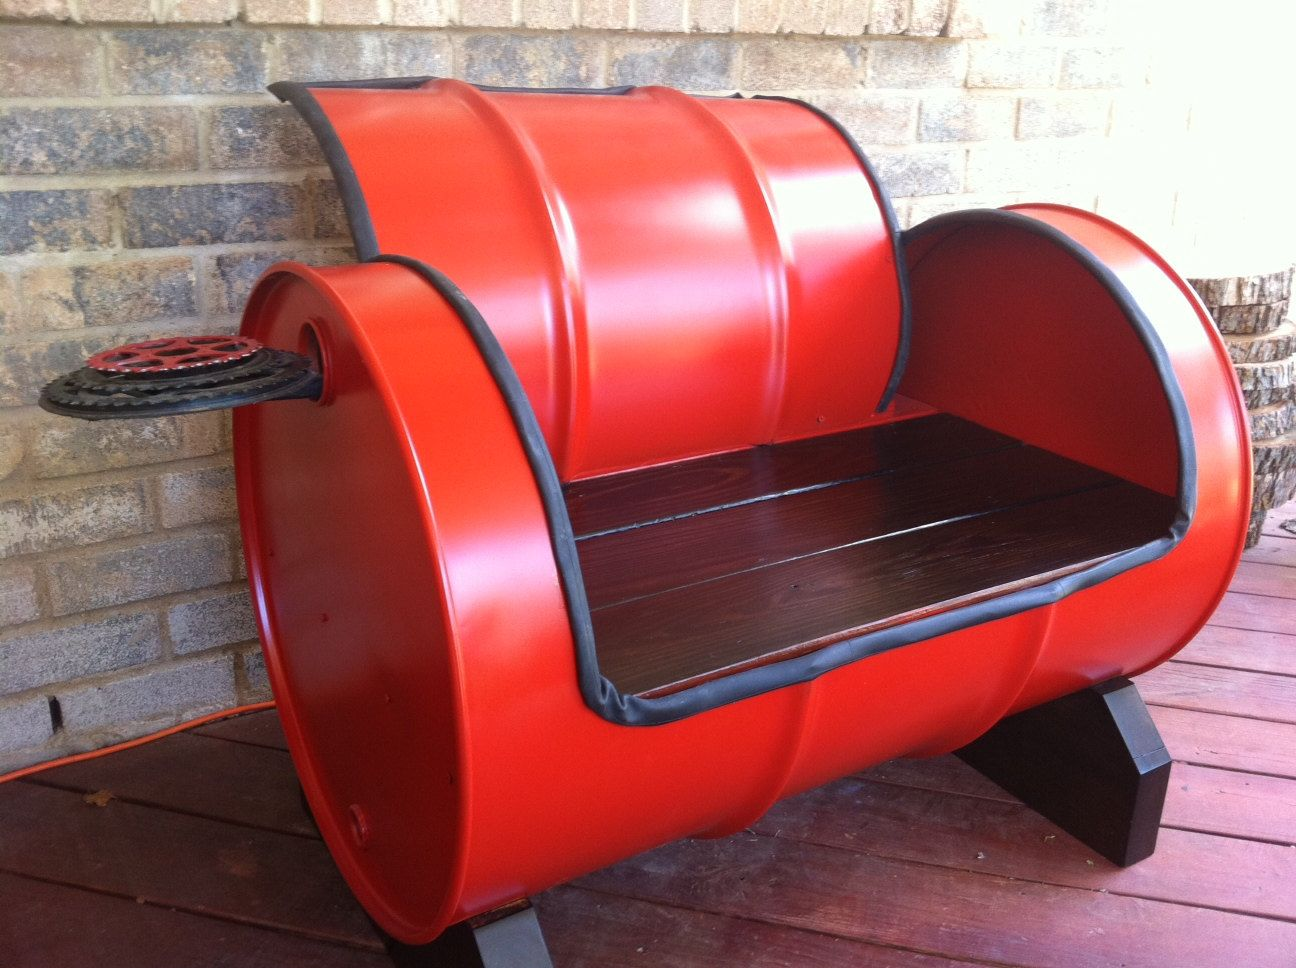 Recycled Furniture Ideas Loft Ideas Love This A Recycled Drum Bench  A Cozy Functional